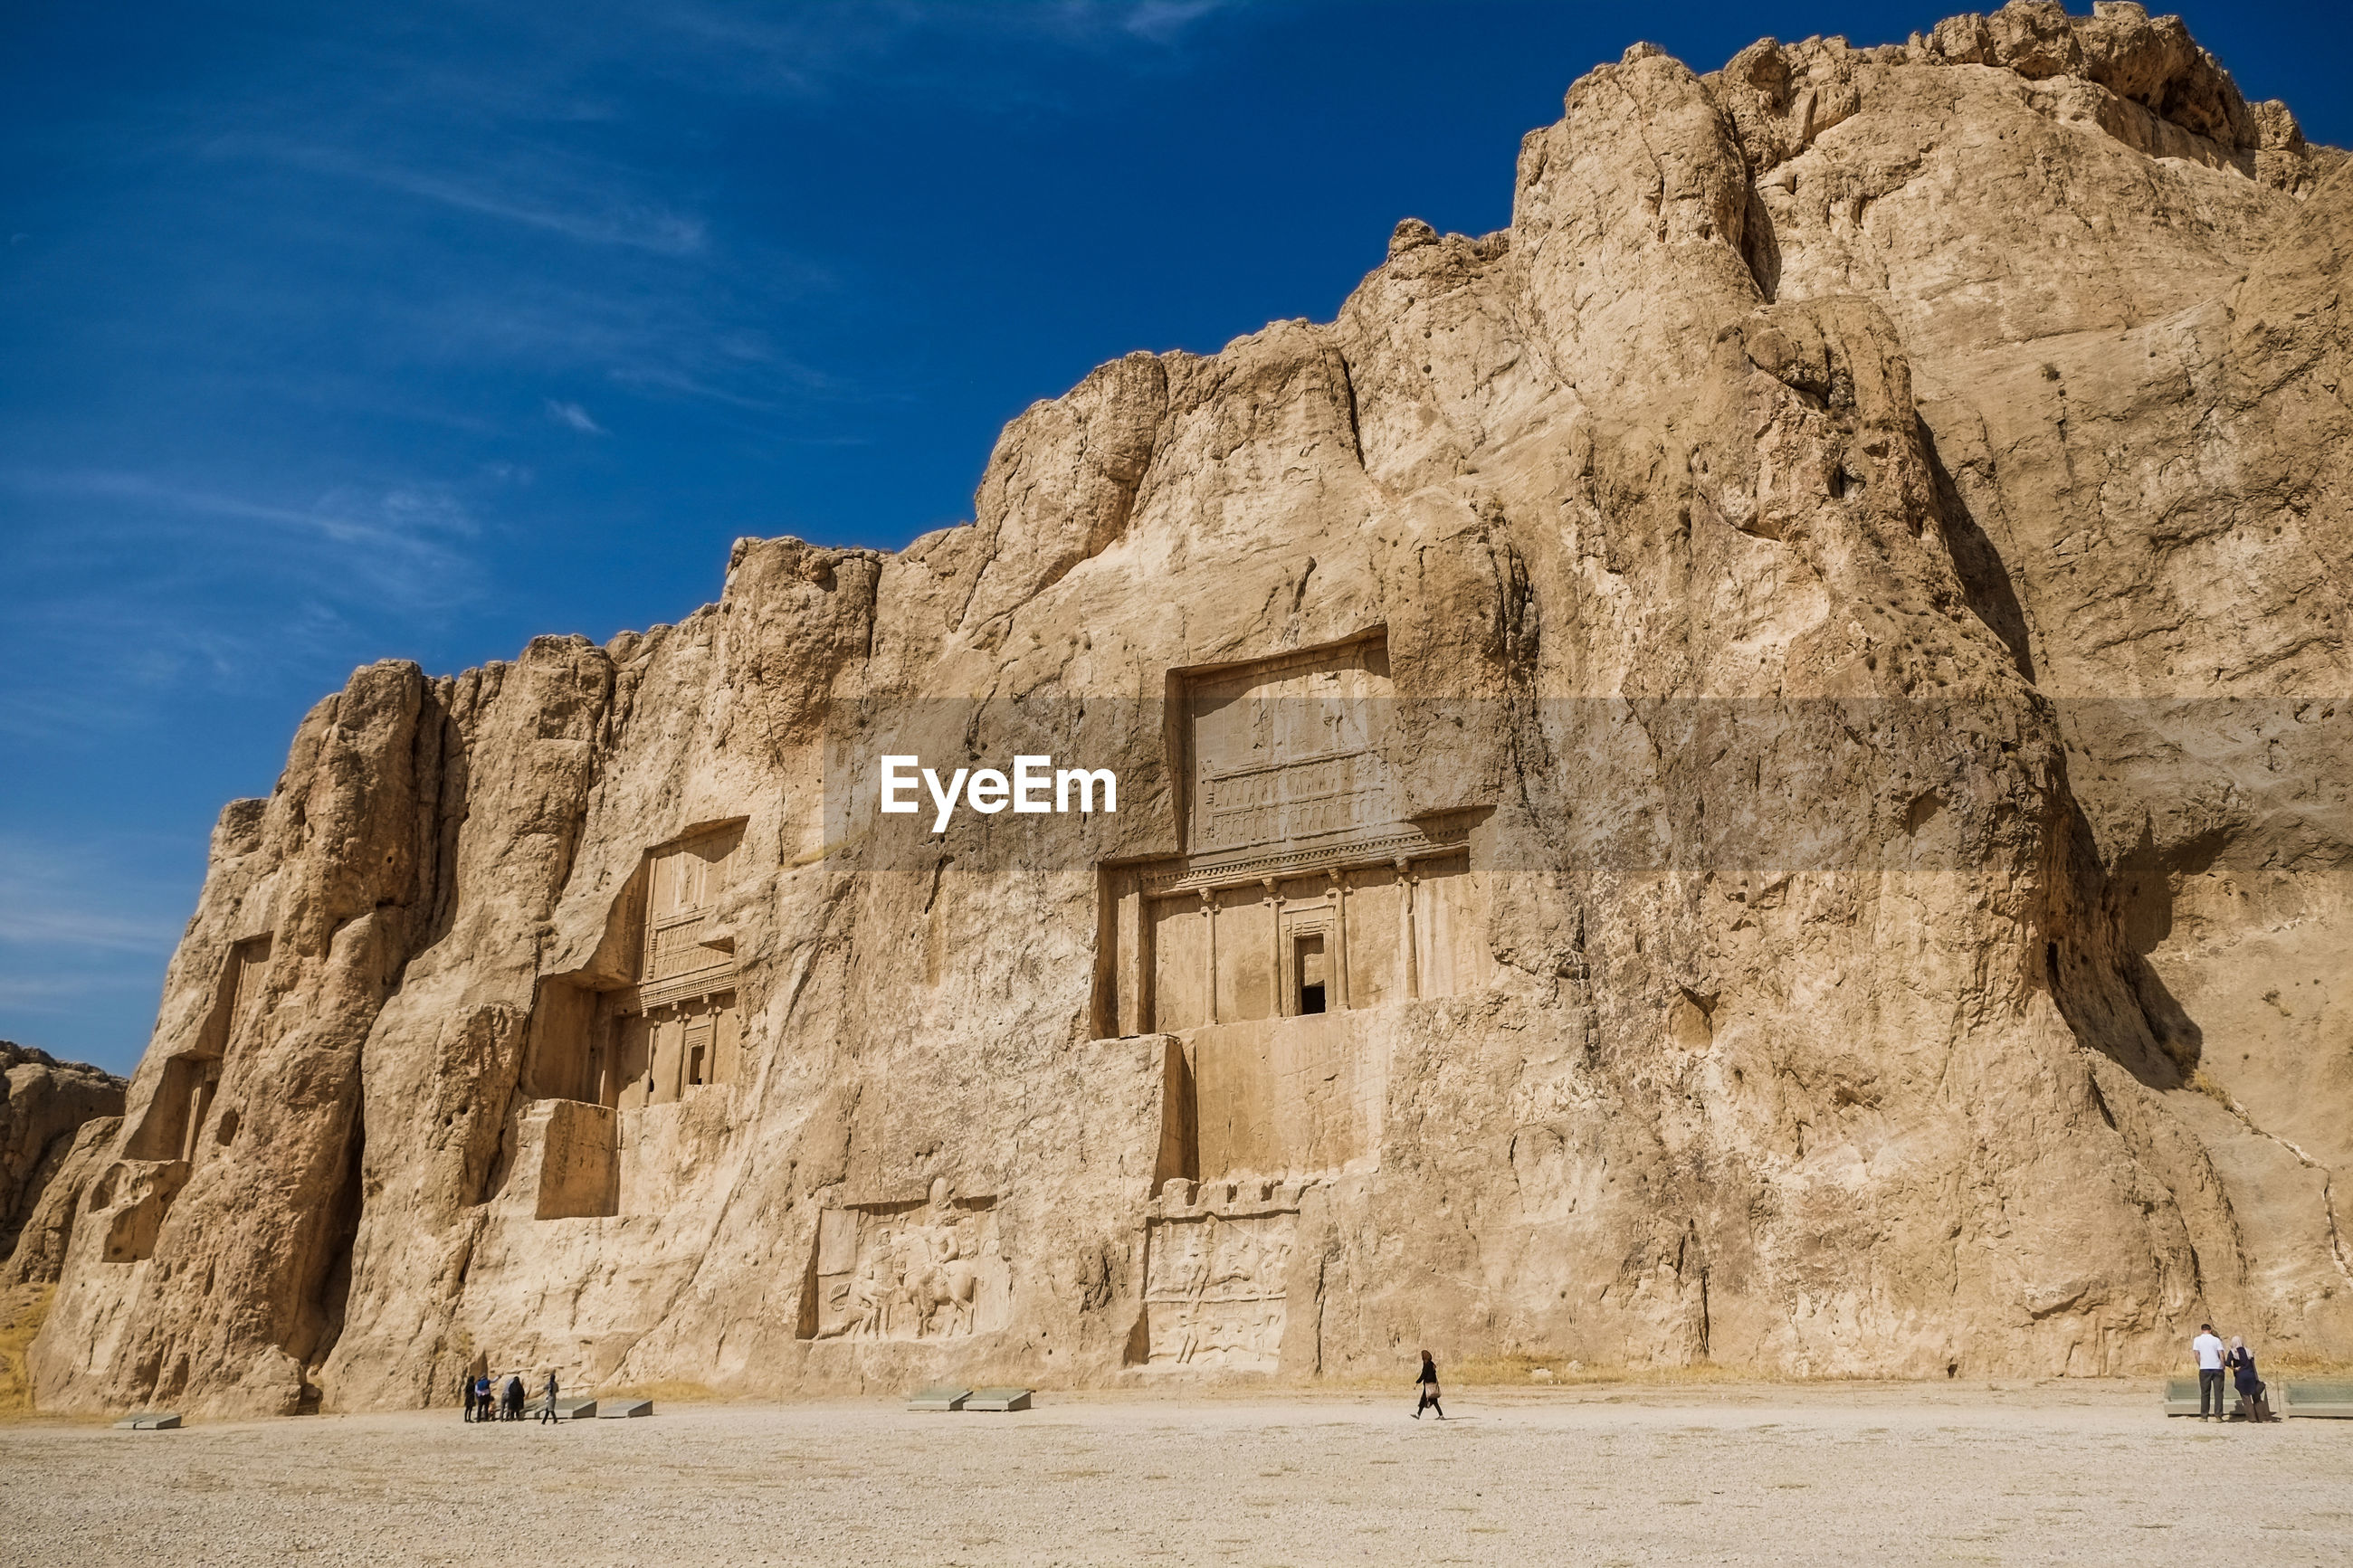 Landscape of the naqsh-e rustam shows large tombs cut high into the cliff face. fars province, iran.